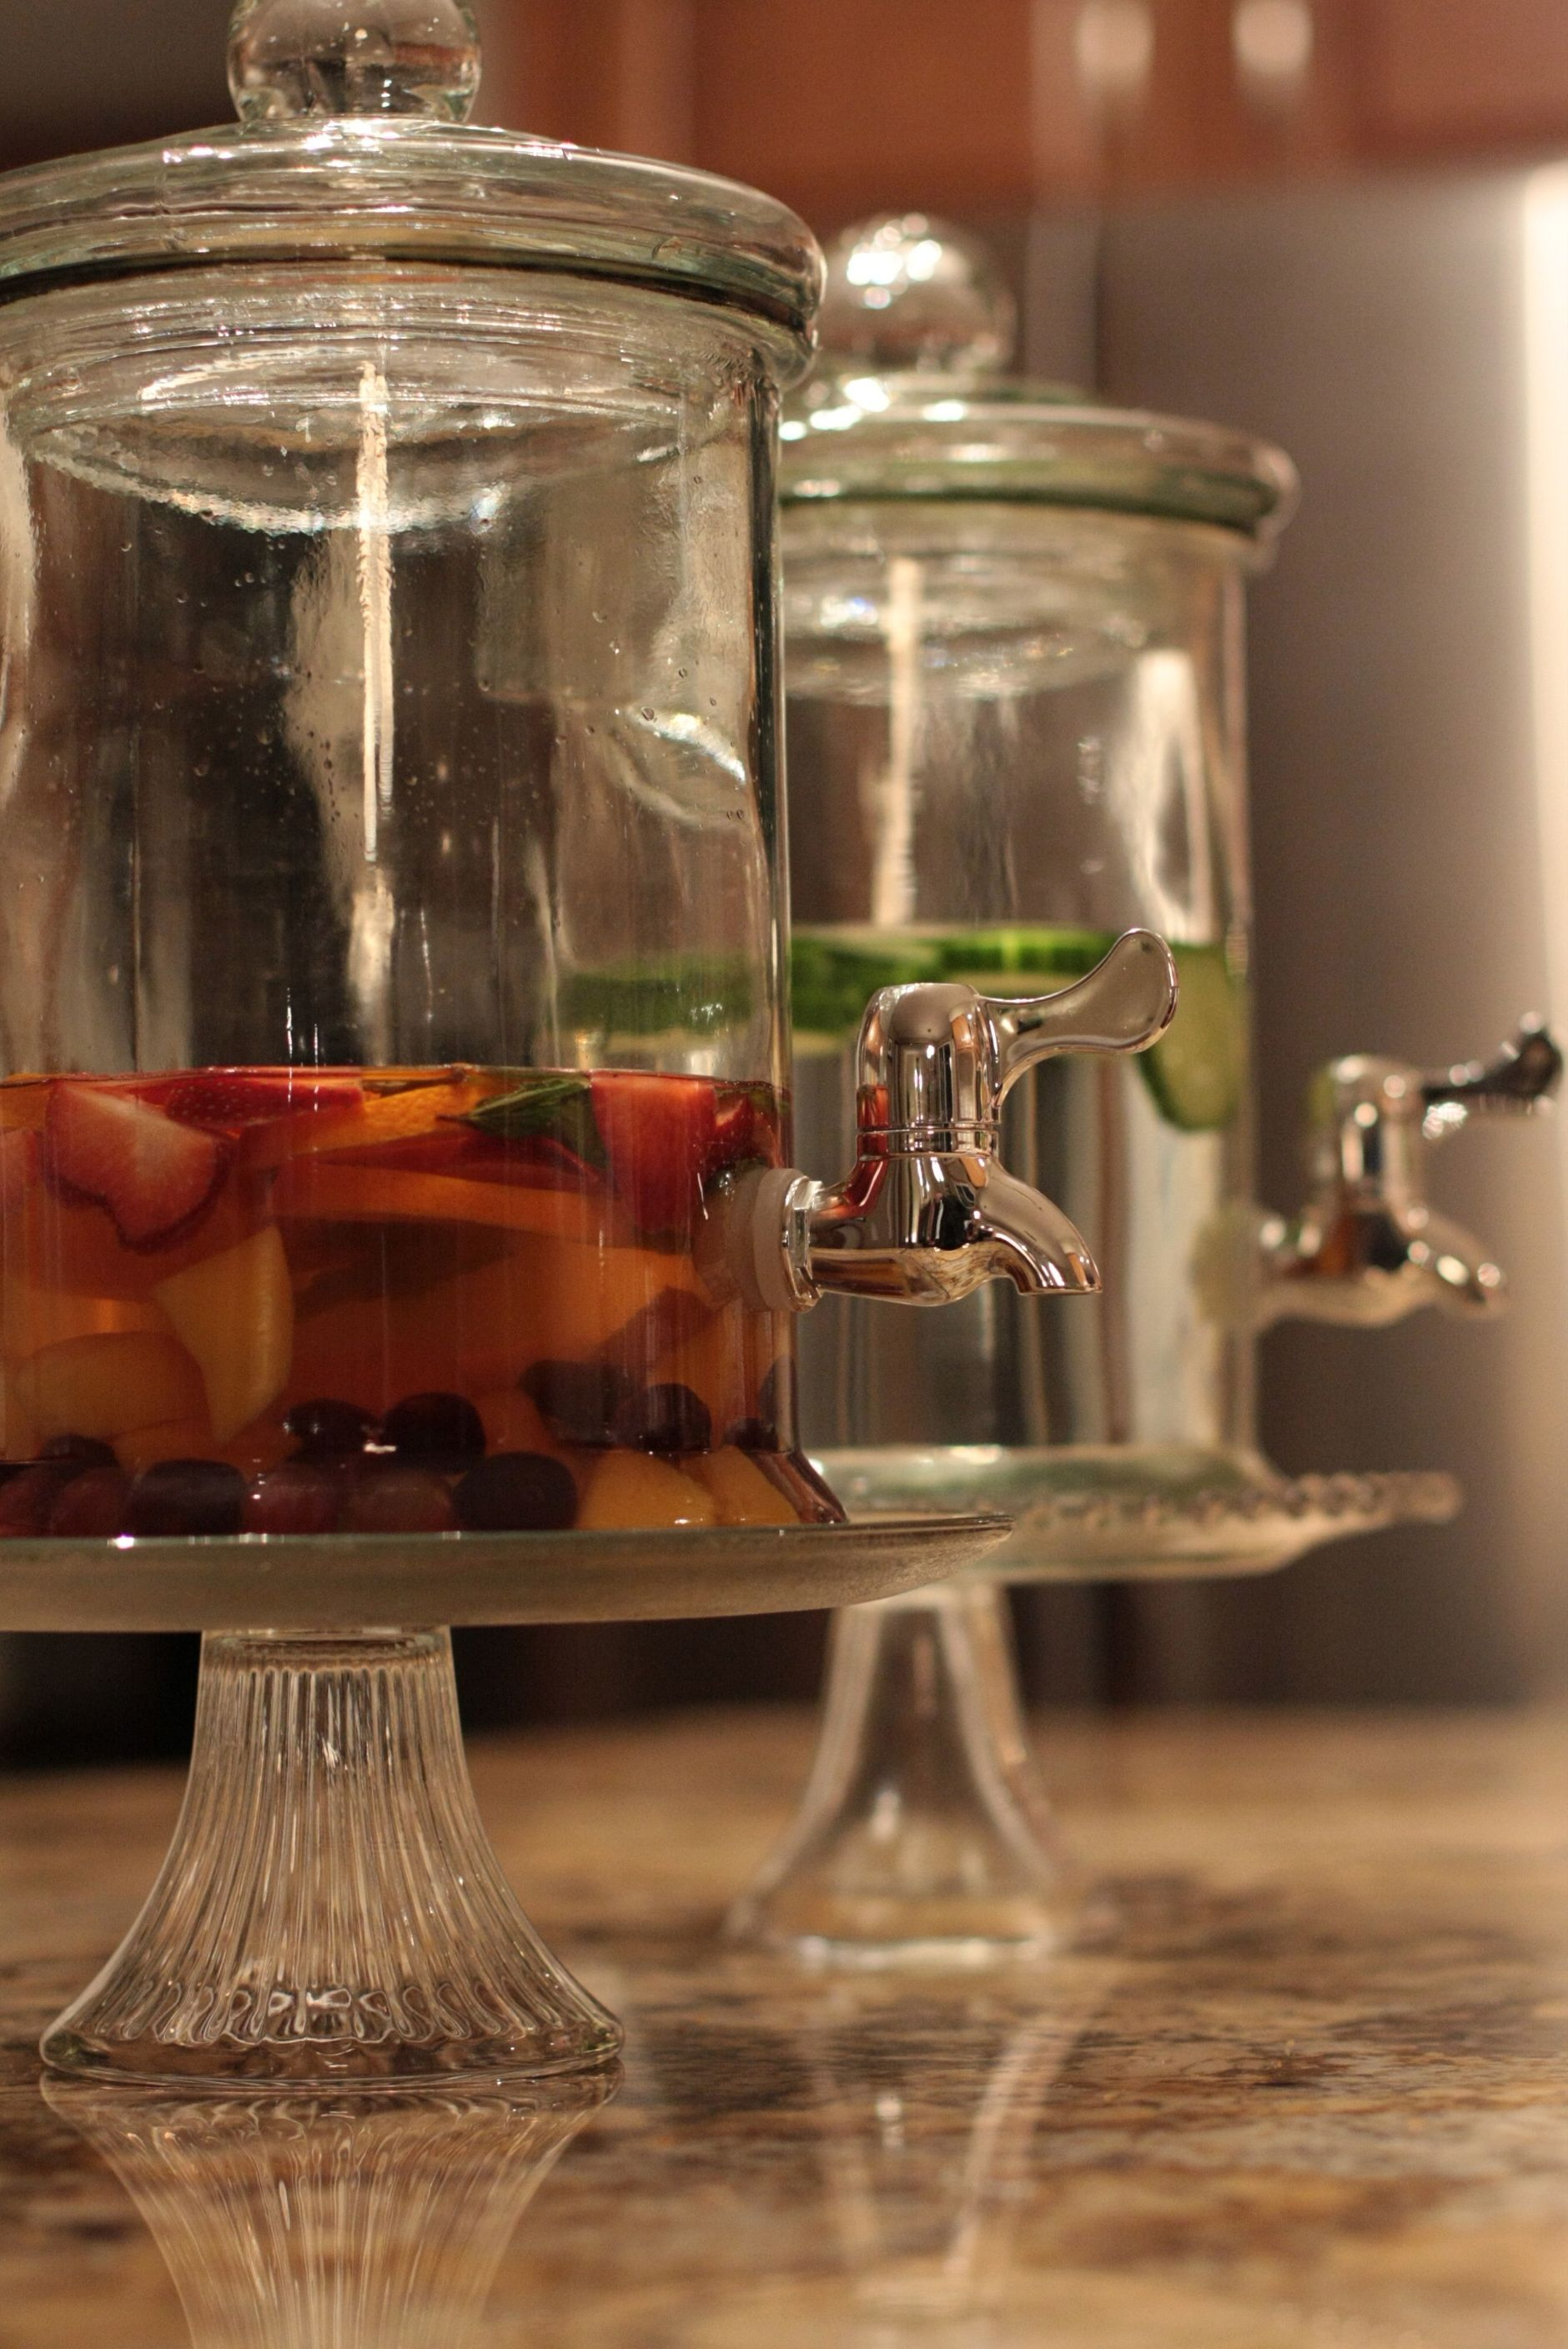 Pin By Kati Foster On Ideas For Entertaining Drink Dispenser Food Displays Food Platters Glass water dispenser with spigot